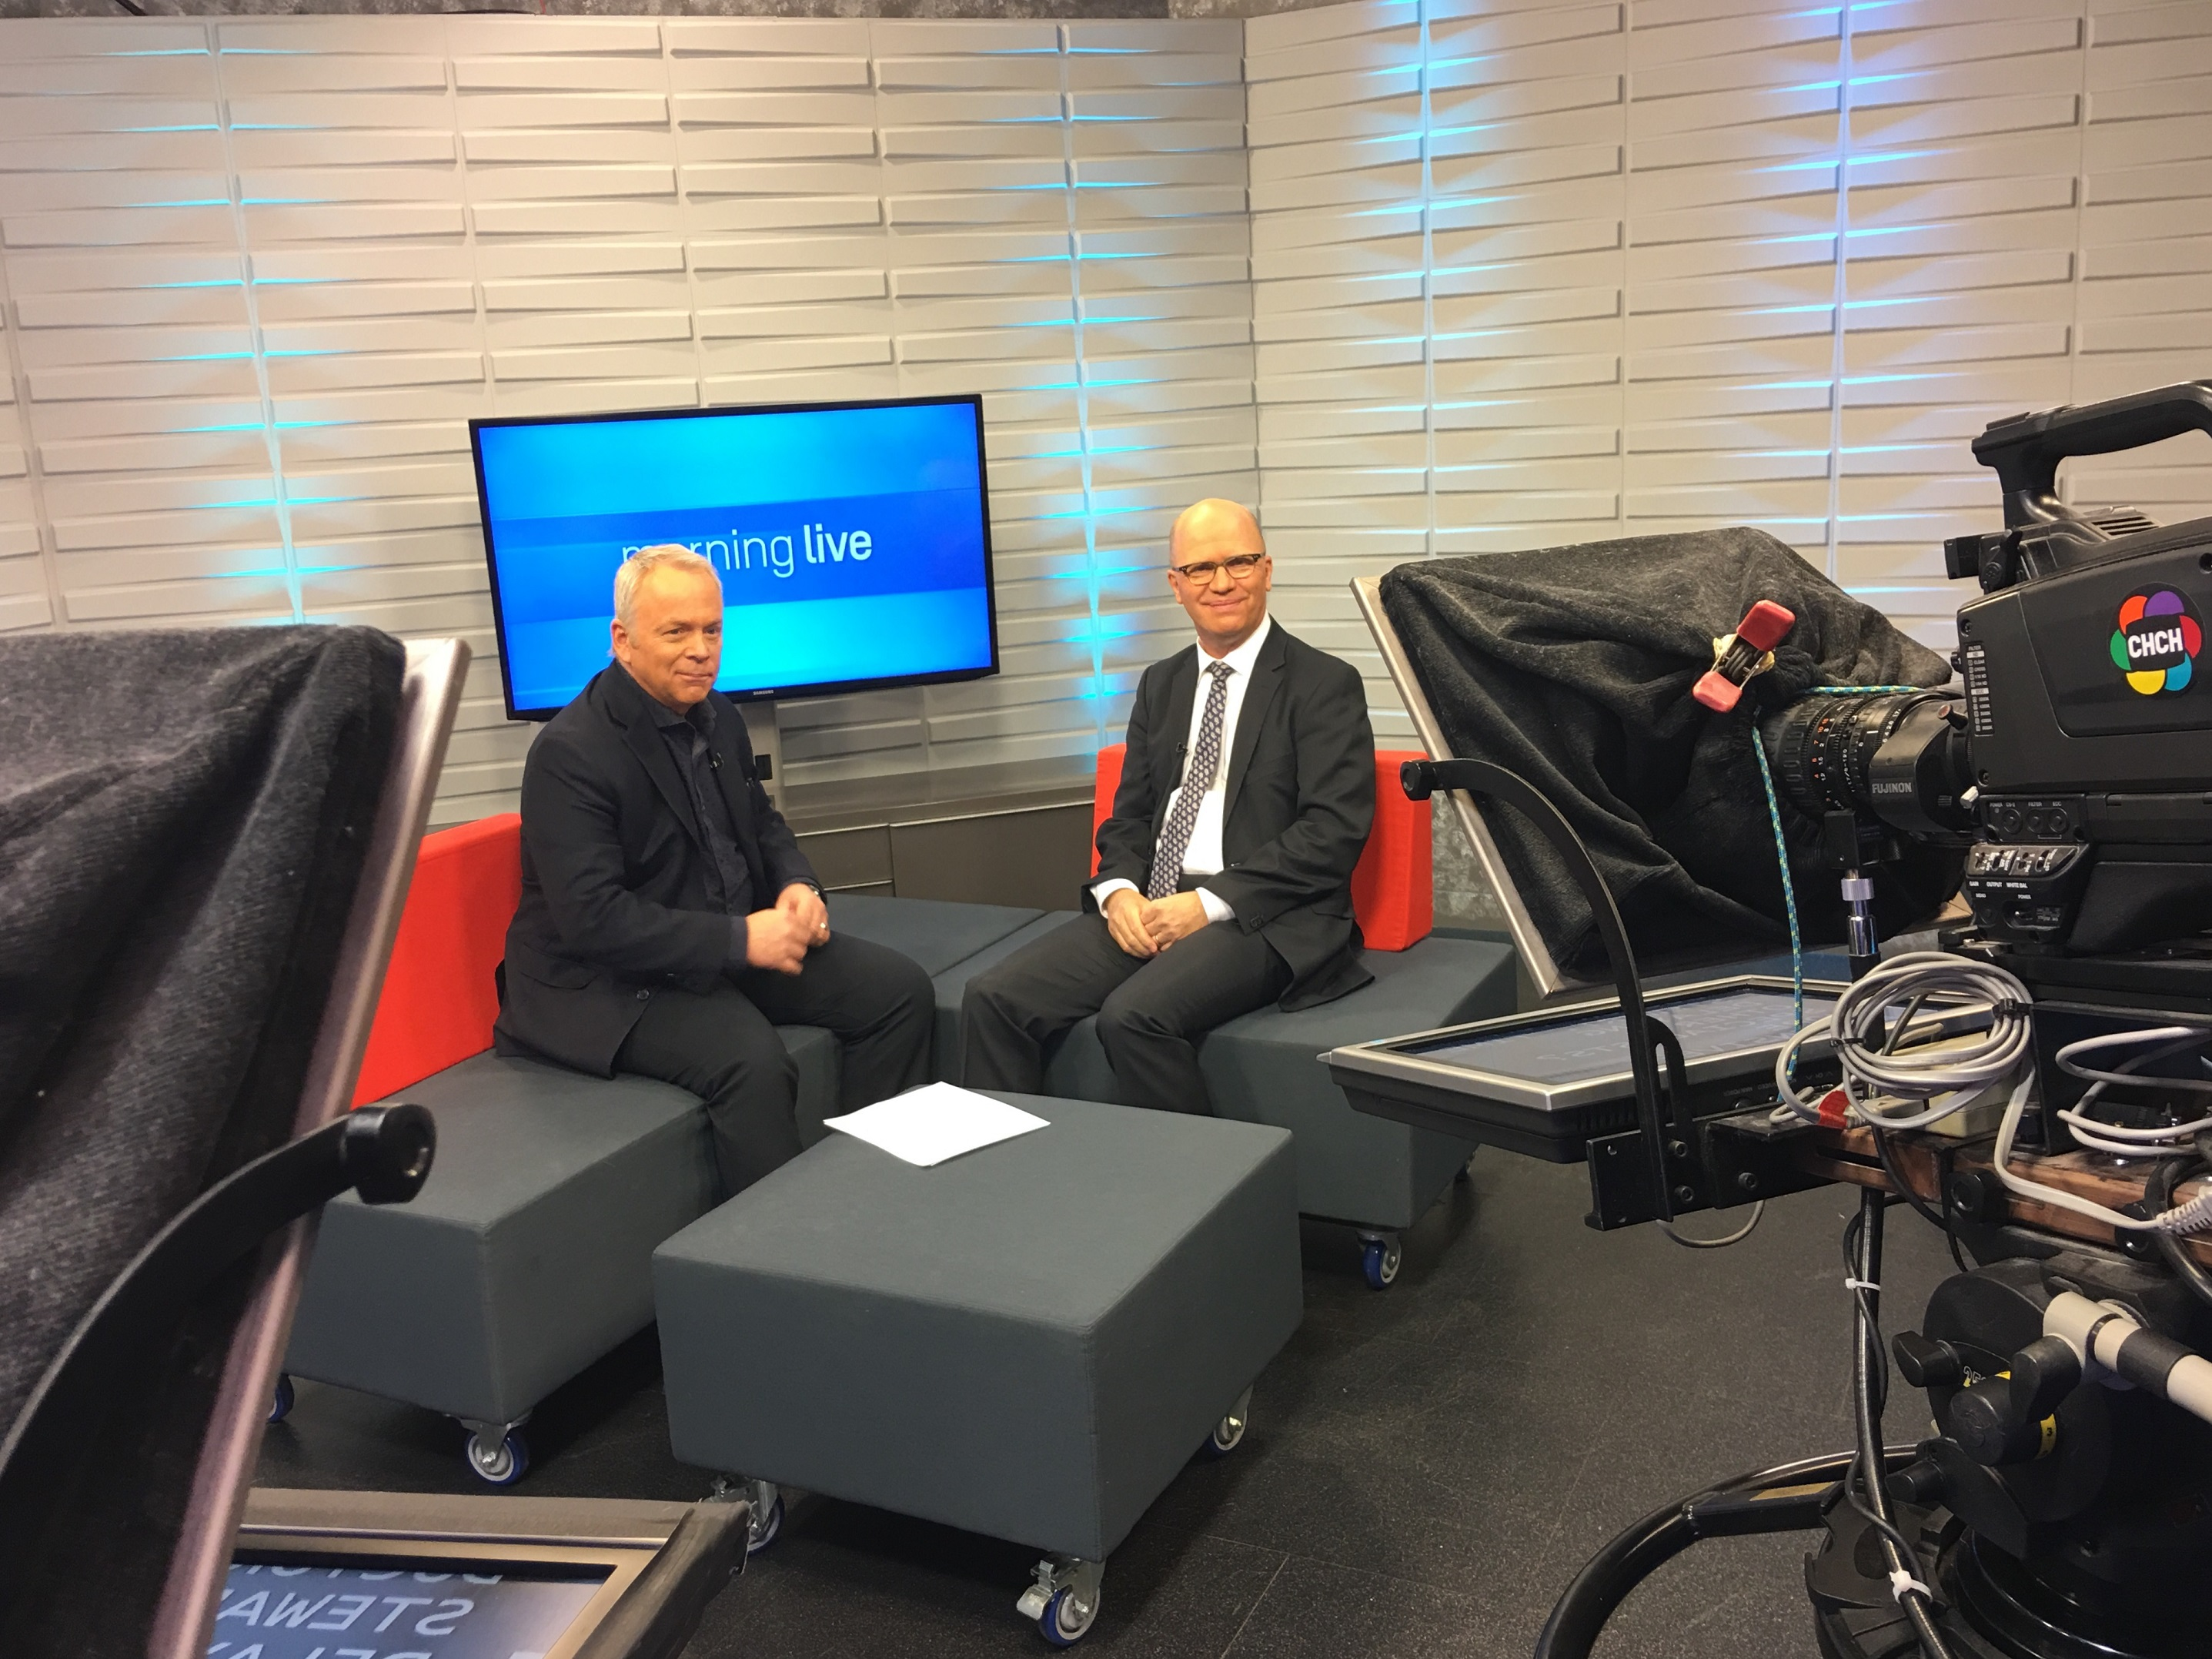 Dr. Tom Stewart, President & CEO of St. Joseph's Health System and Bob Cowan, host of CH Morning Live.